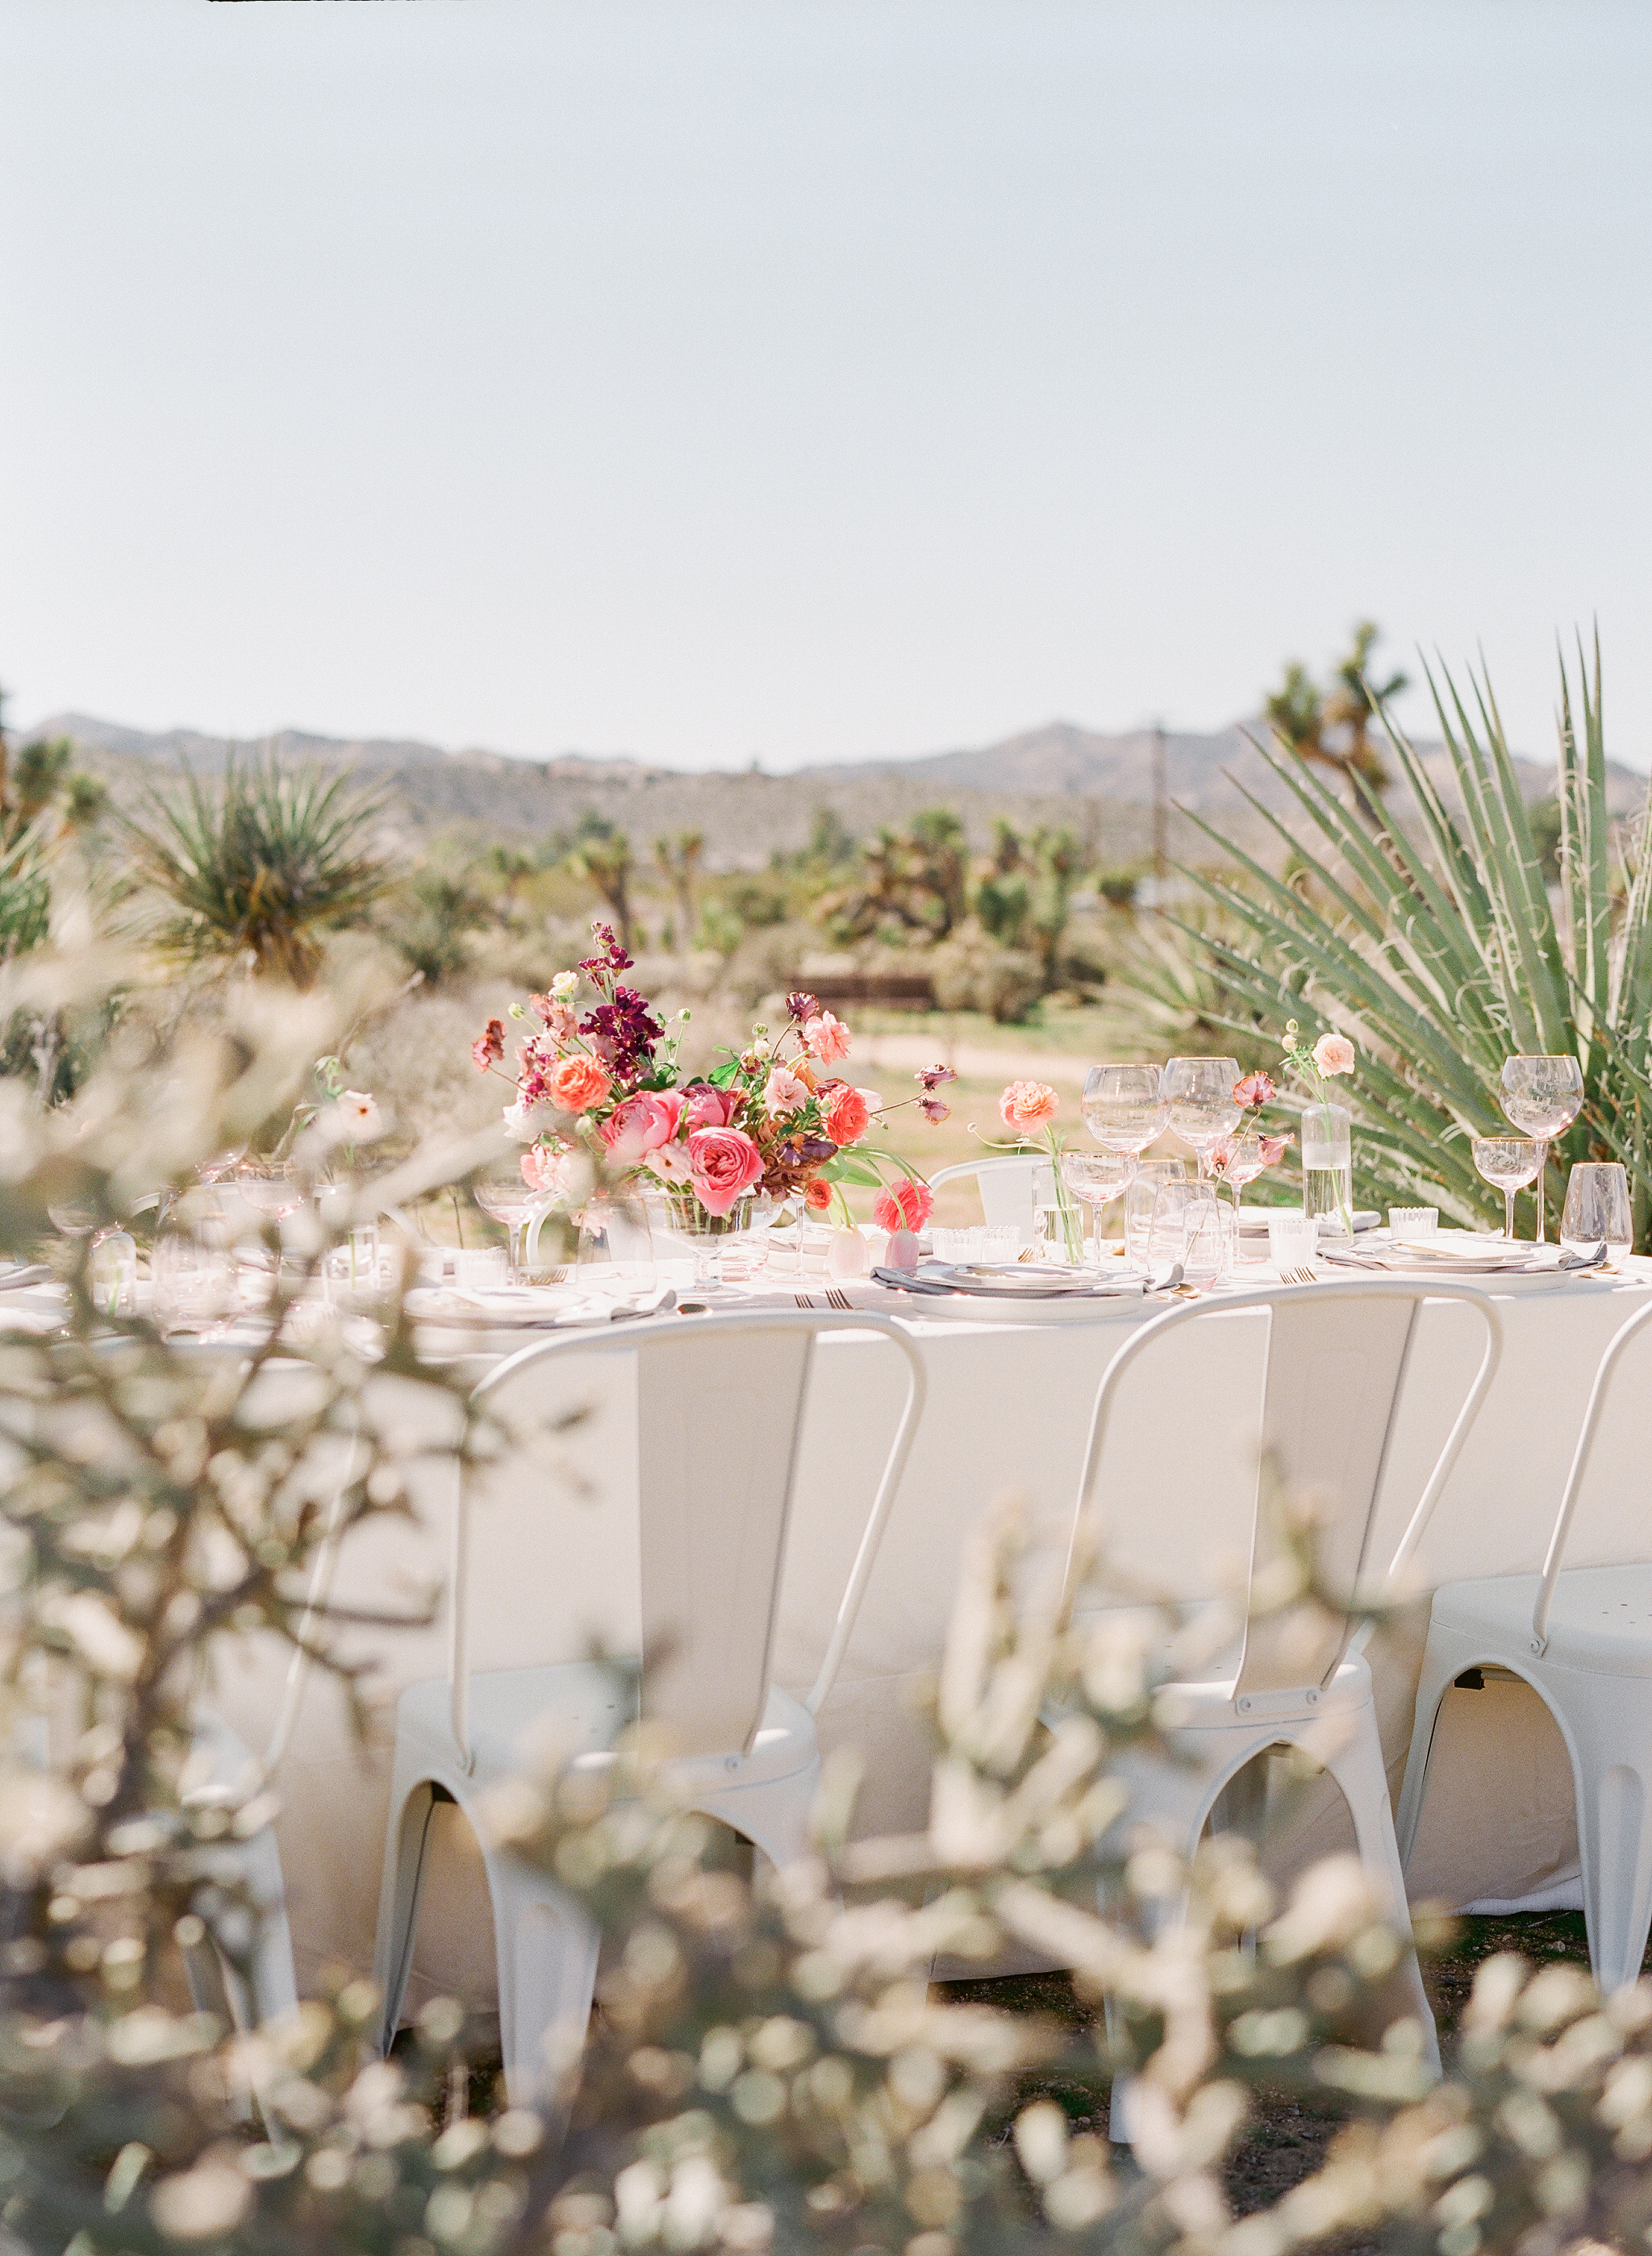 Savan Photography I Oak + Amble flowers I Signature Party Rentals table top goods I Party Crush Studio linens  *note: all tables and chairs used in this shoot belong to Tumbleweed Sanctuary and can be used for your gathering.